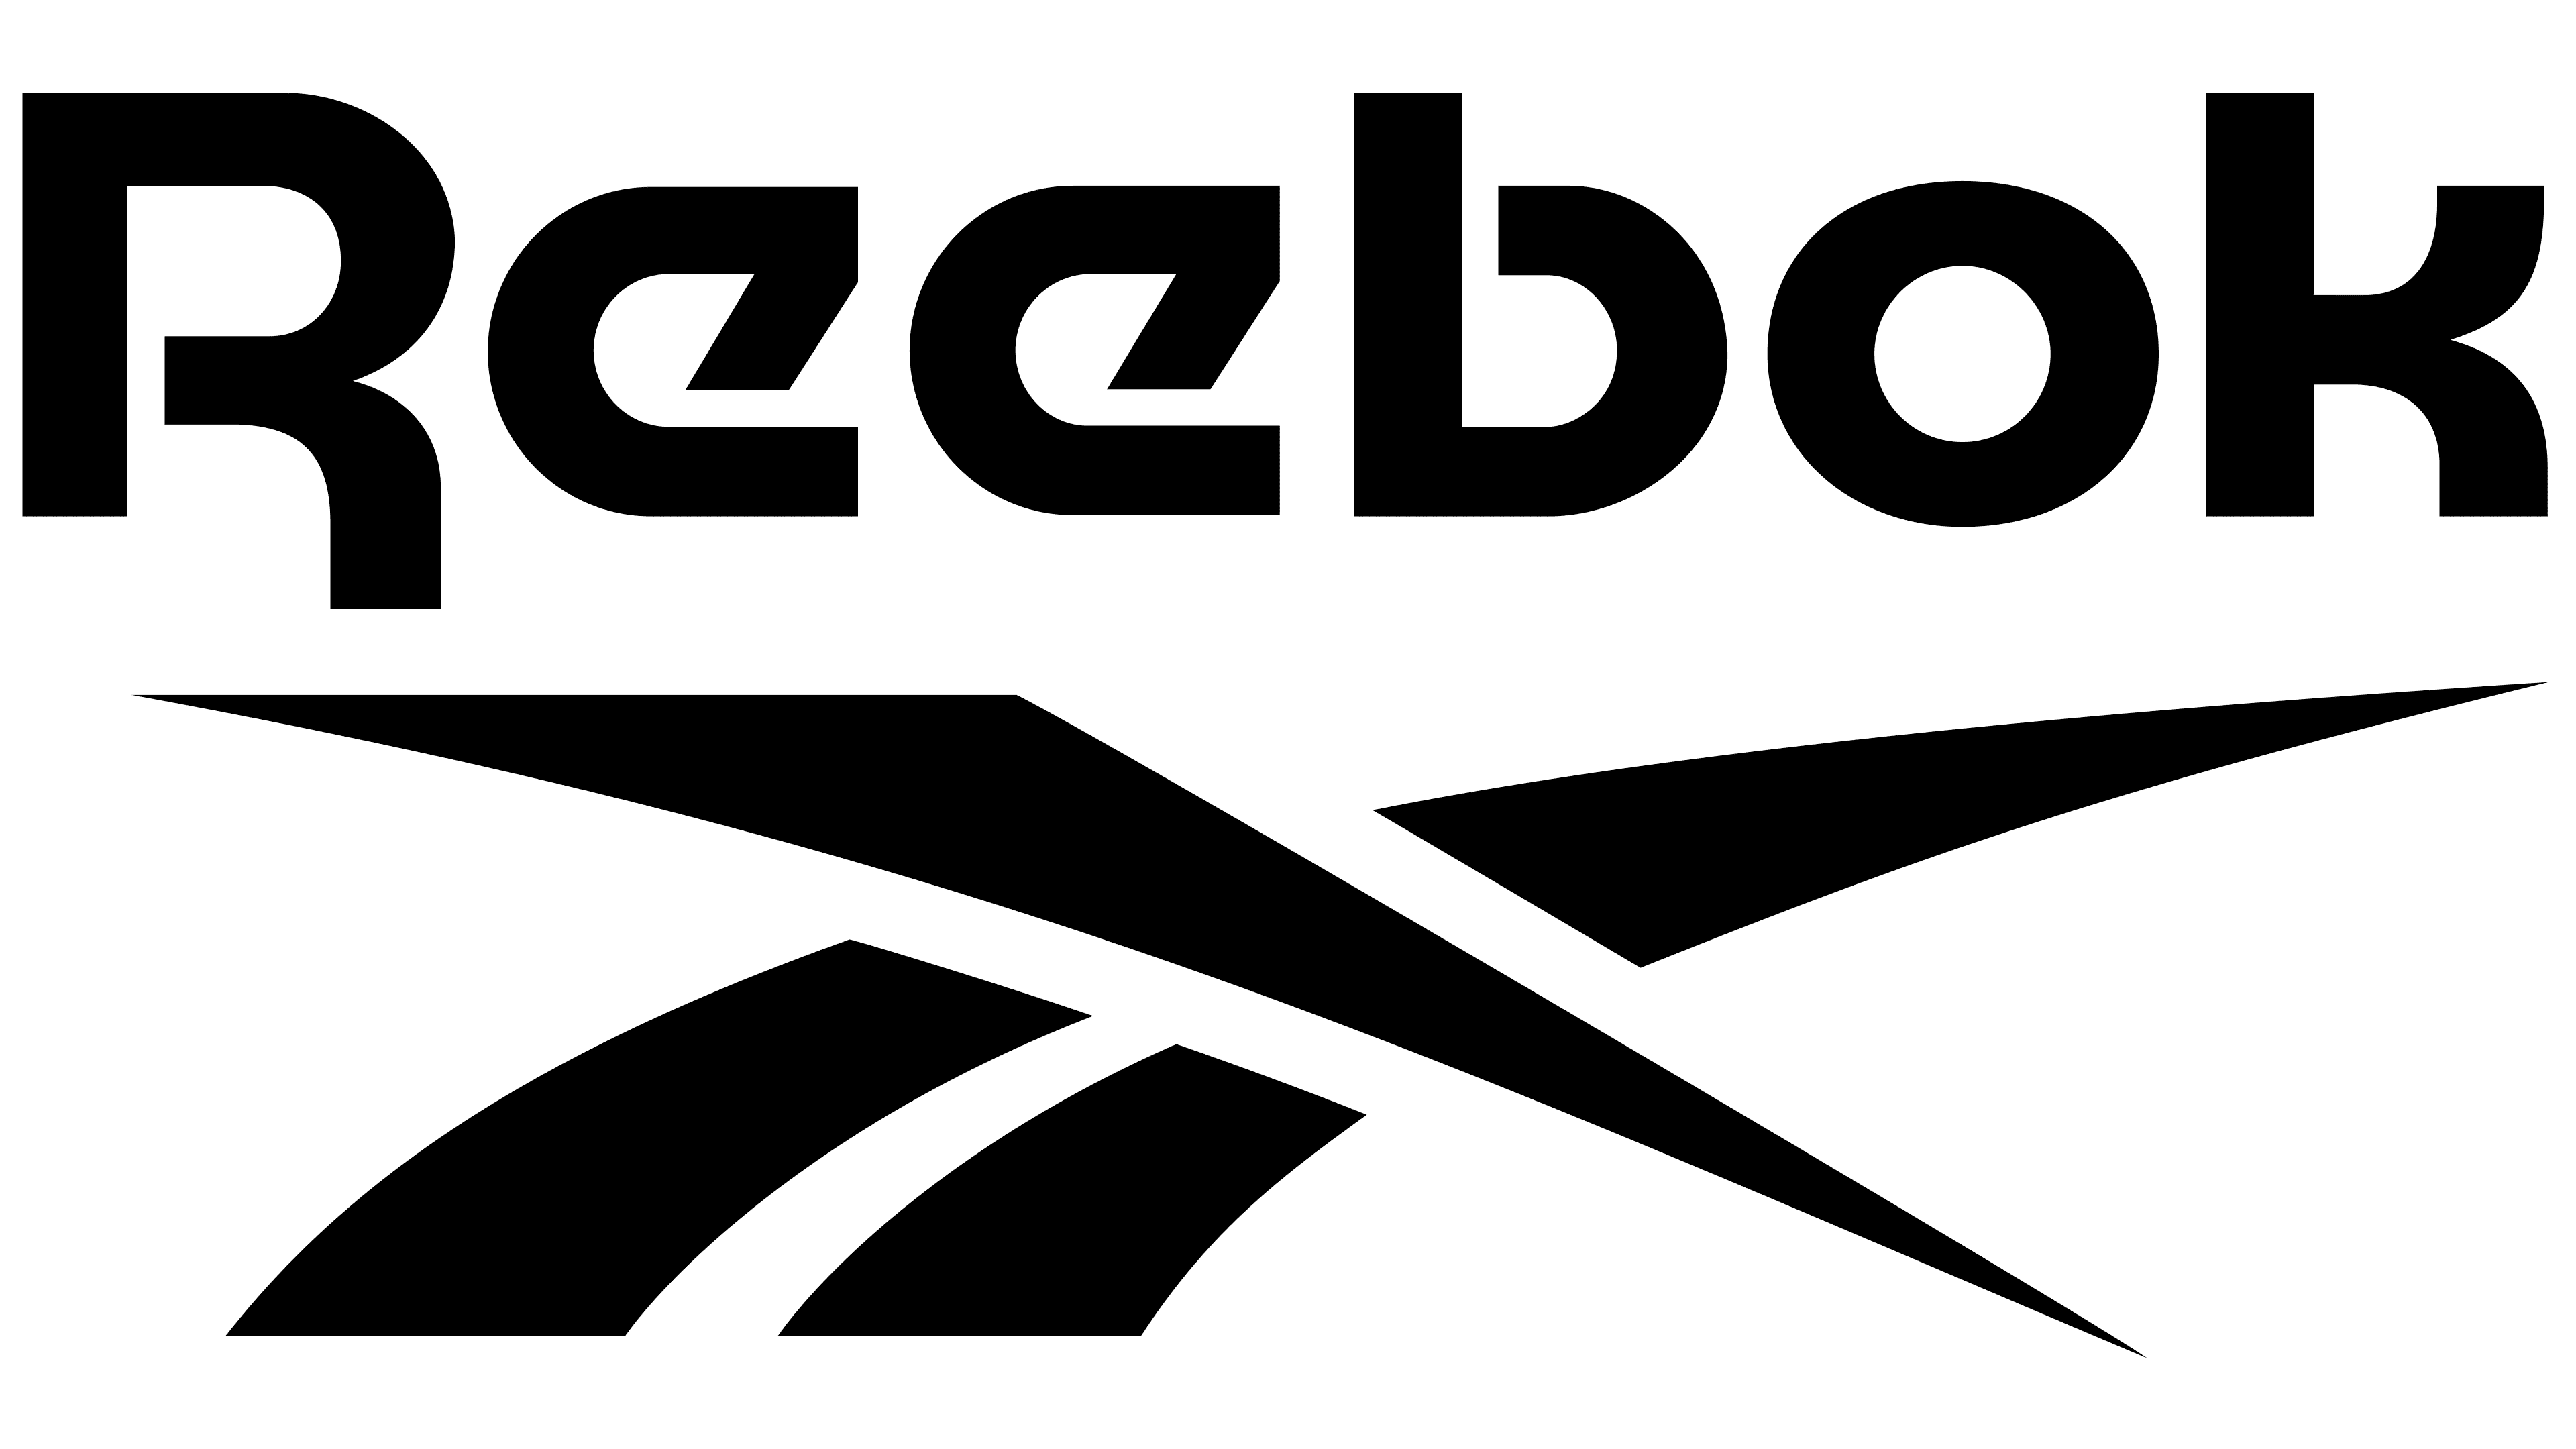 Billedresultat for reebok logo